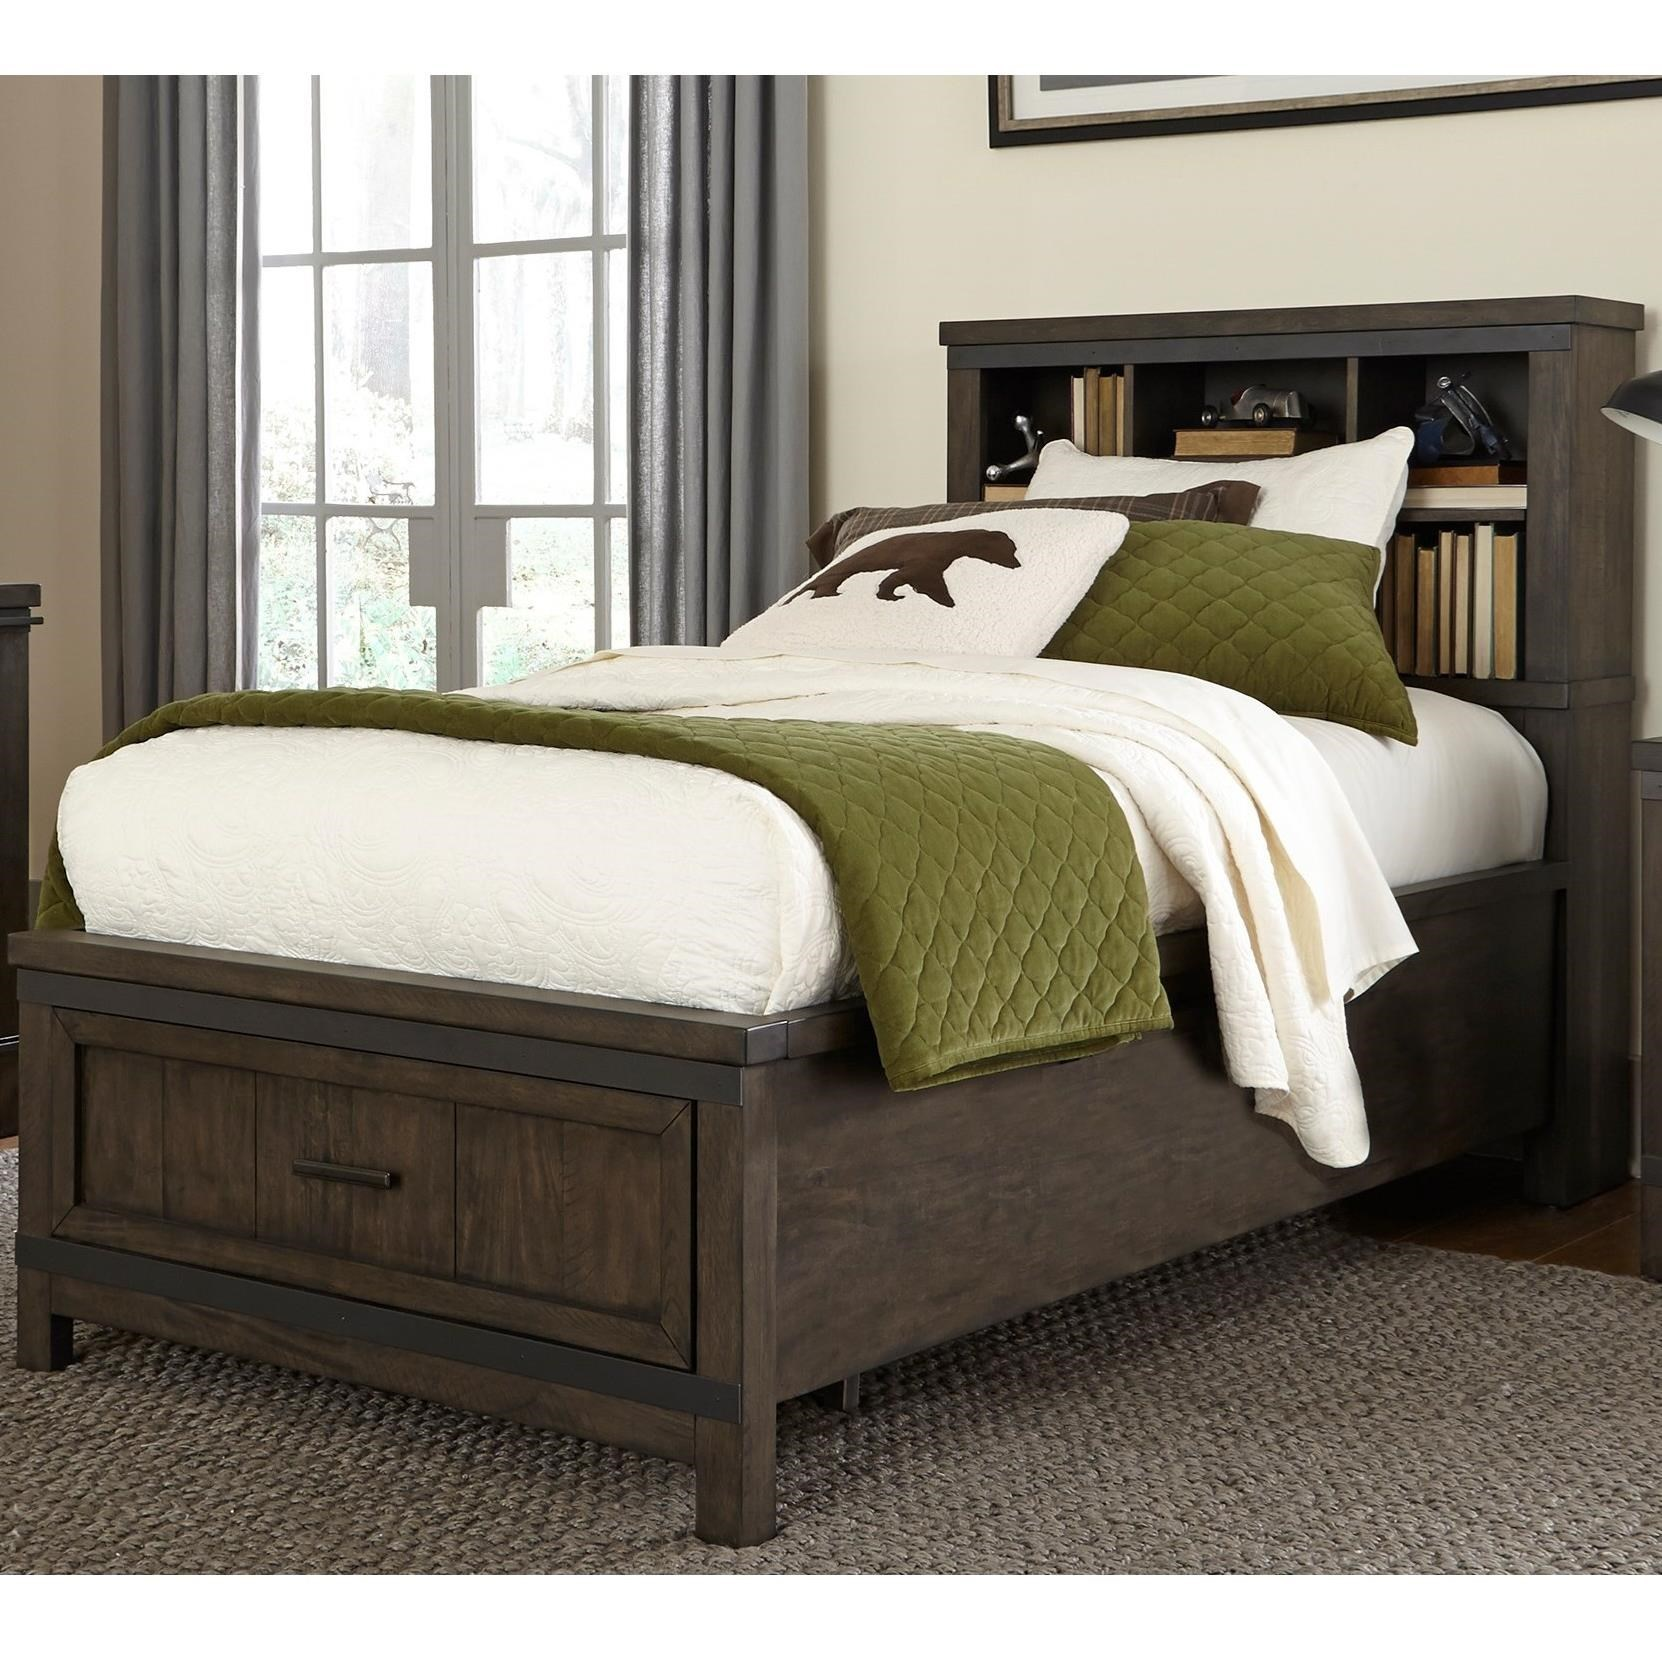 Liberty Furniture Thornwood Hills Rustic Full Bookcase Bed With Footboard  Storage